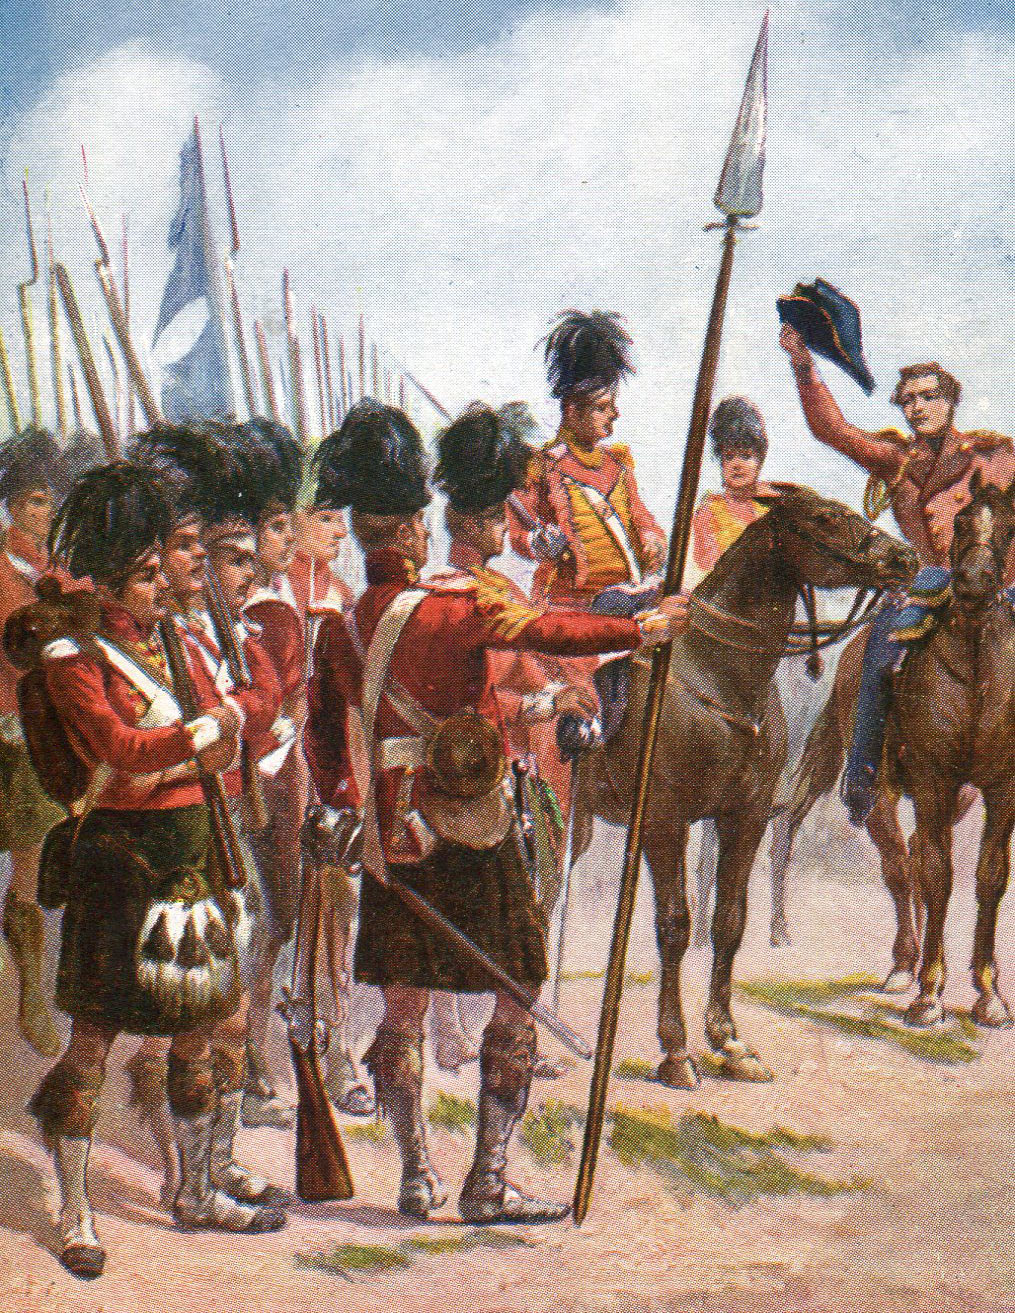 Sir John Moore encouraging the 42nd Highlanders the Black Watch at the Battle of Corunna on 16th January 1809 in the Peninsular War